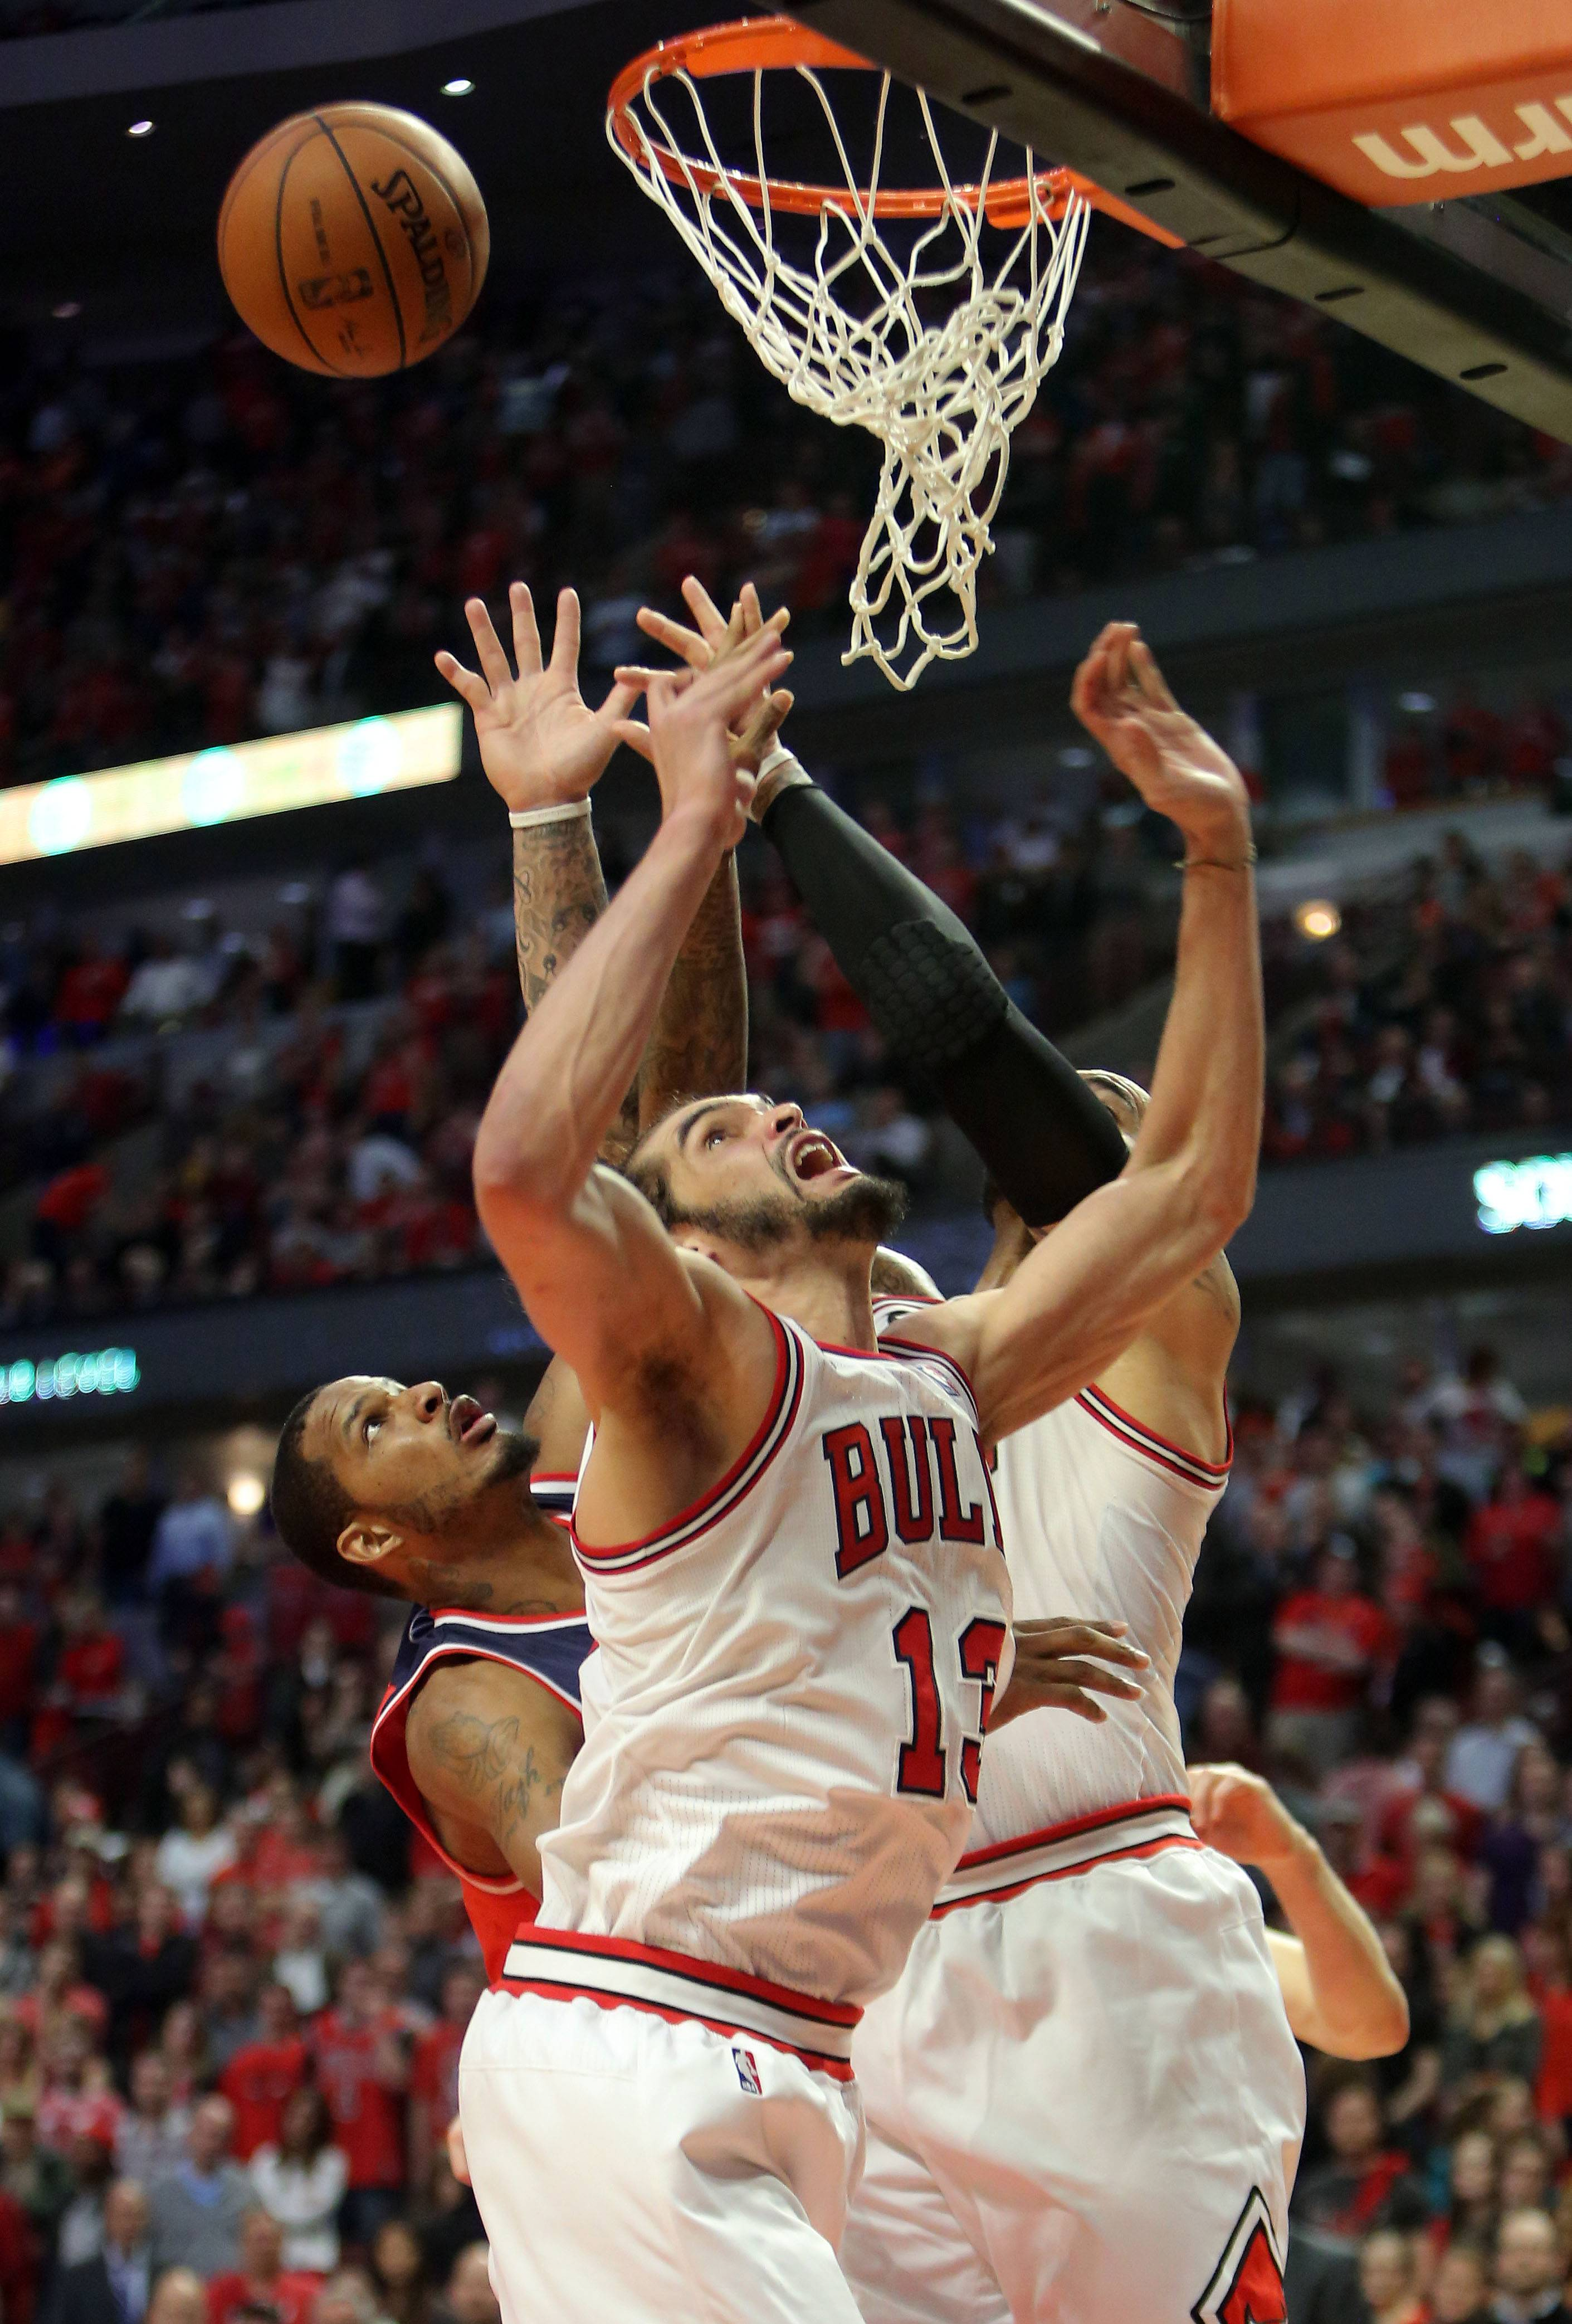 Chicago Bulls center Joakim Noah goes for a rebound.